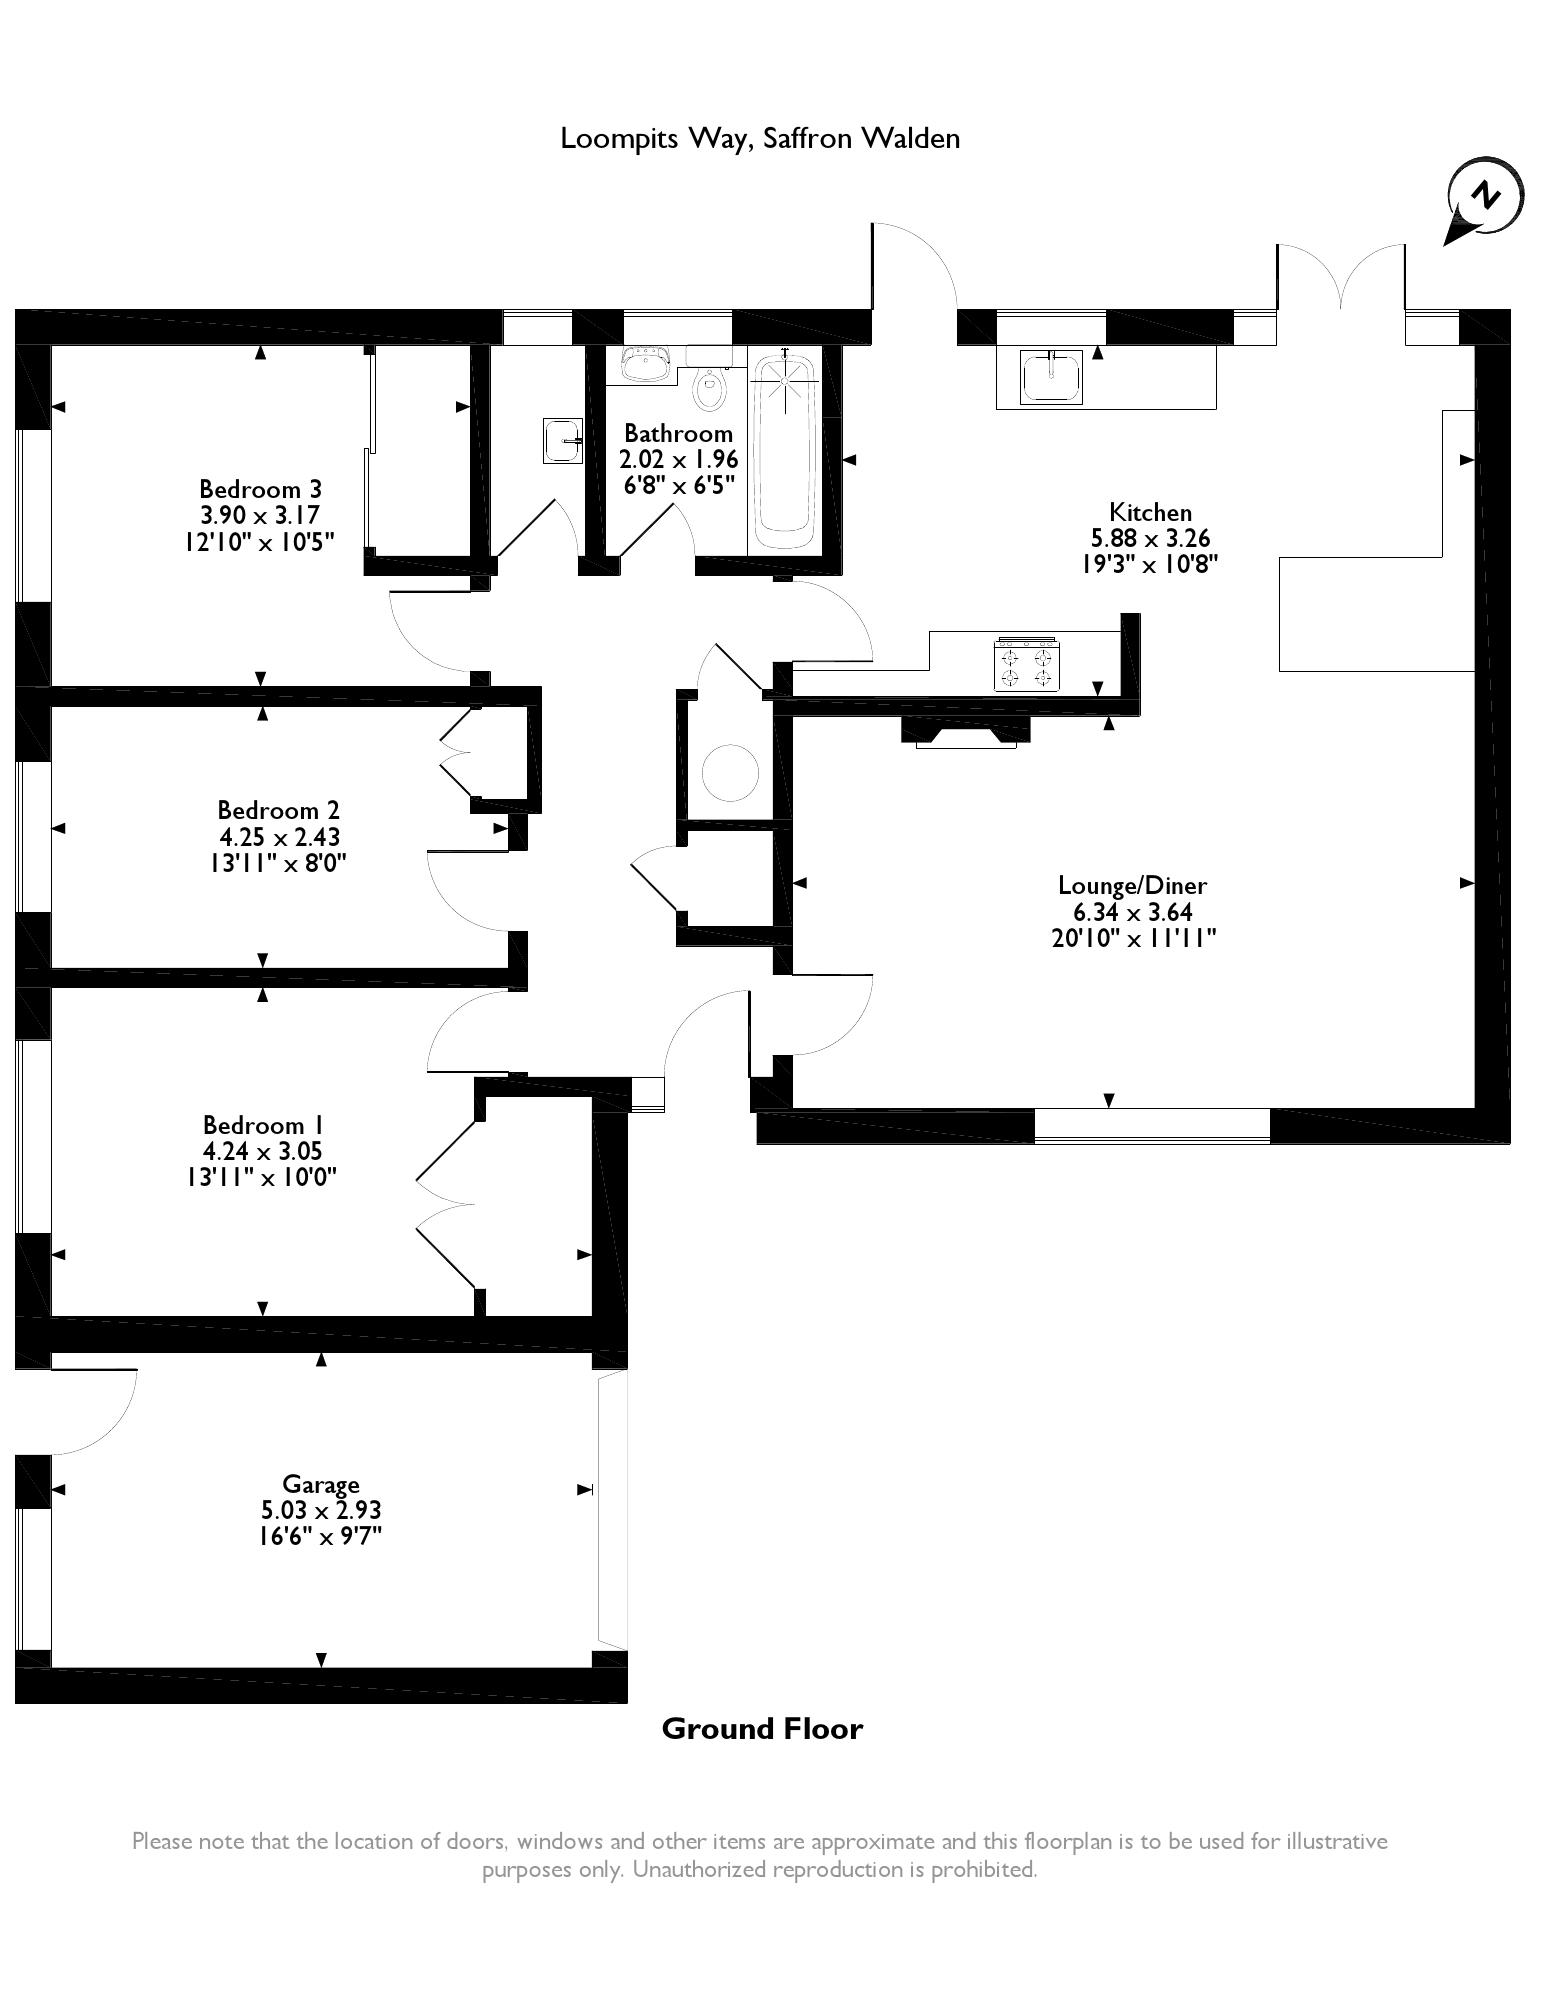 Loompits Way, Saffron Walden, CB11 floor plan